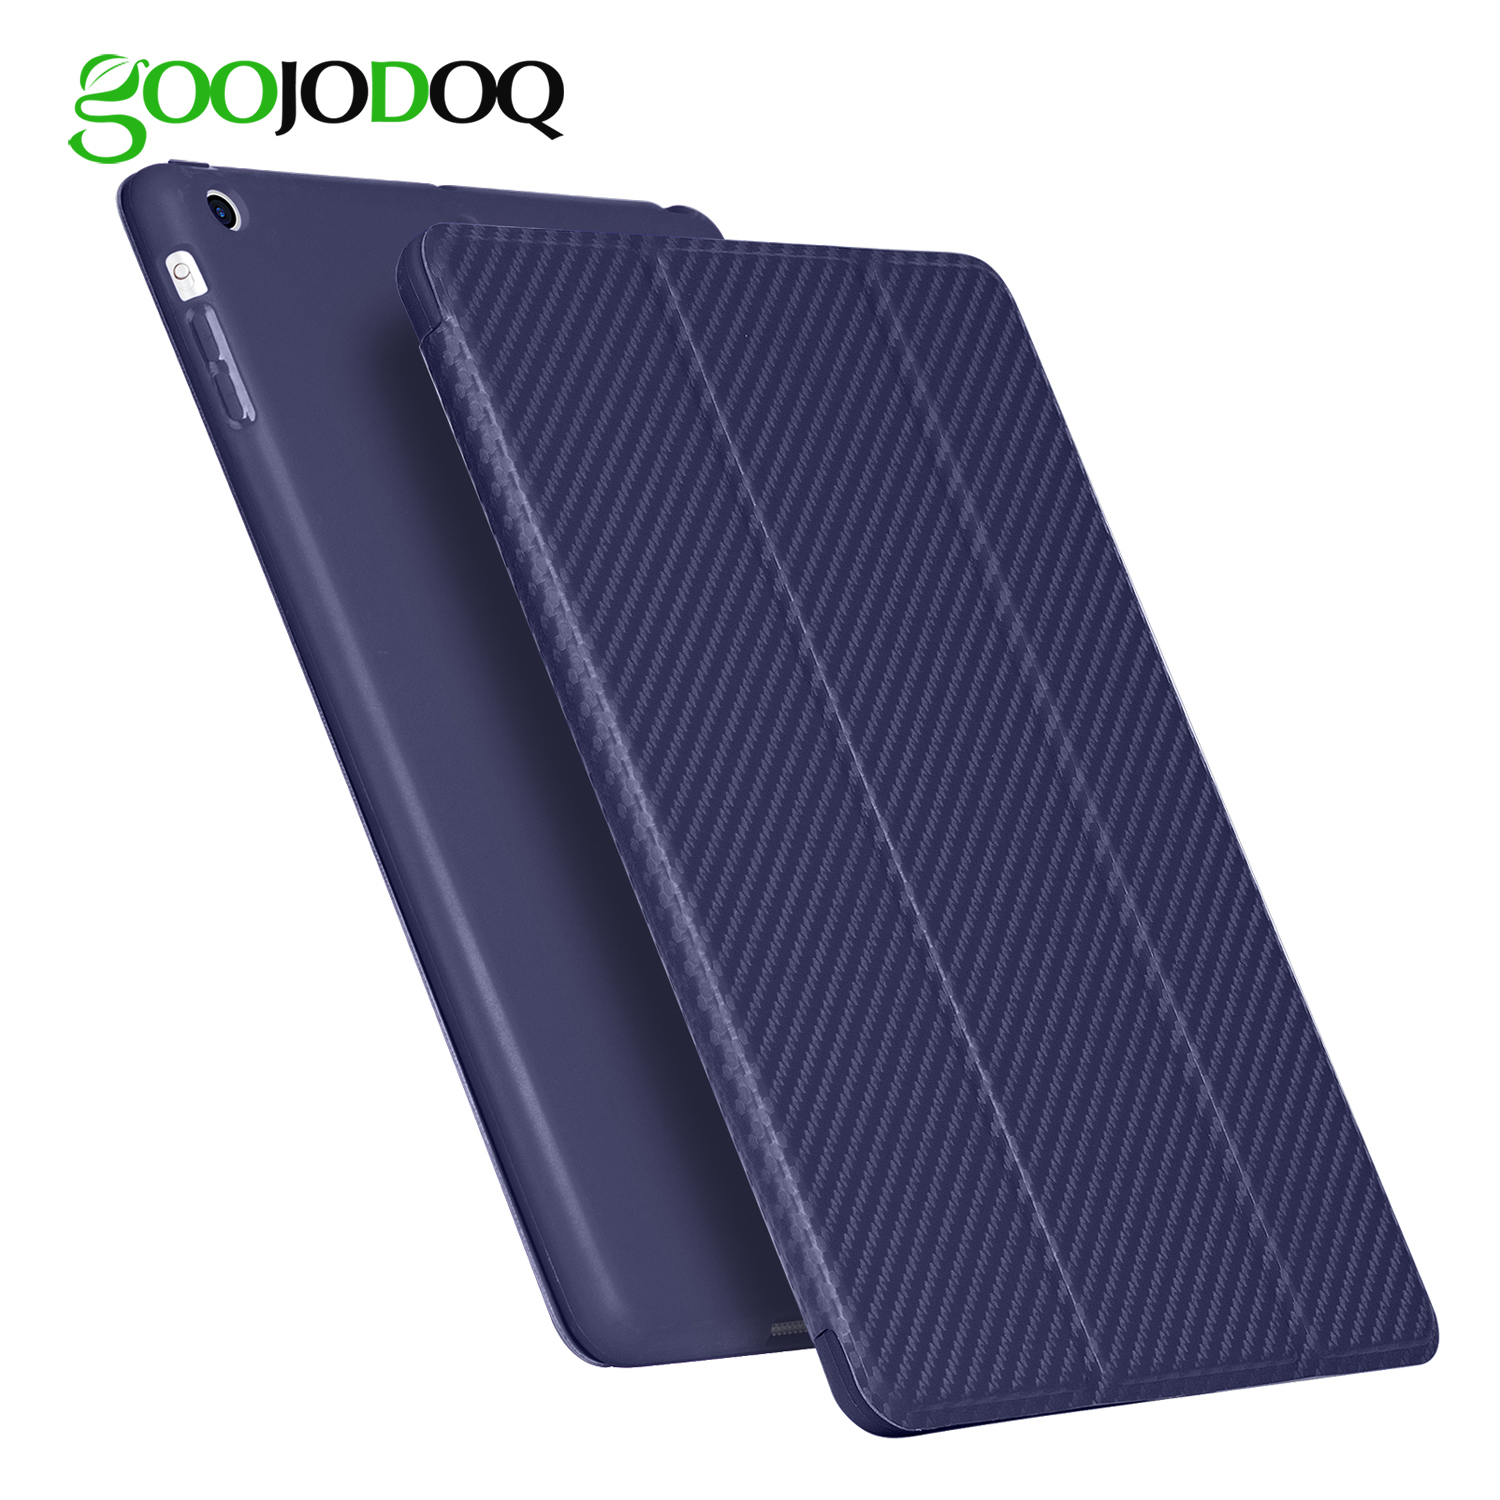 Rast për iPad Air 2, GOOJODOQ Rast i pasëm silikoni për Apple iPad Air 2 iPad 6 PU Smart Cover Leather Smart A1566 A1567 Auto Sleep / Wake